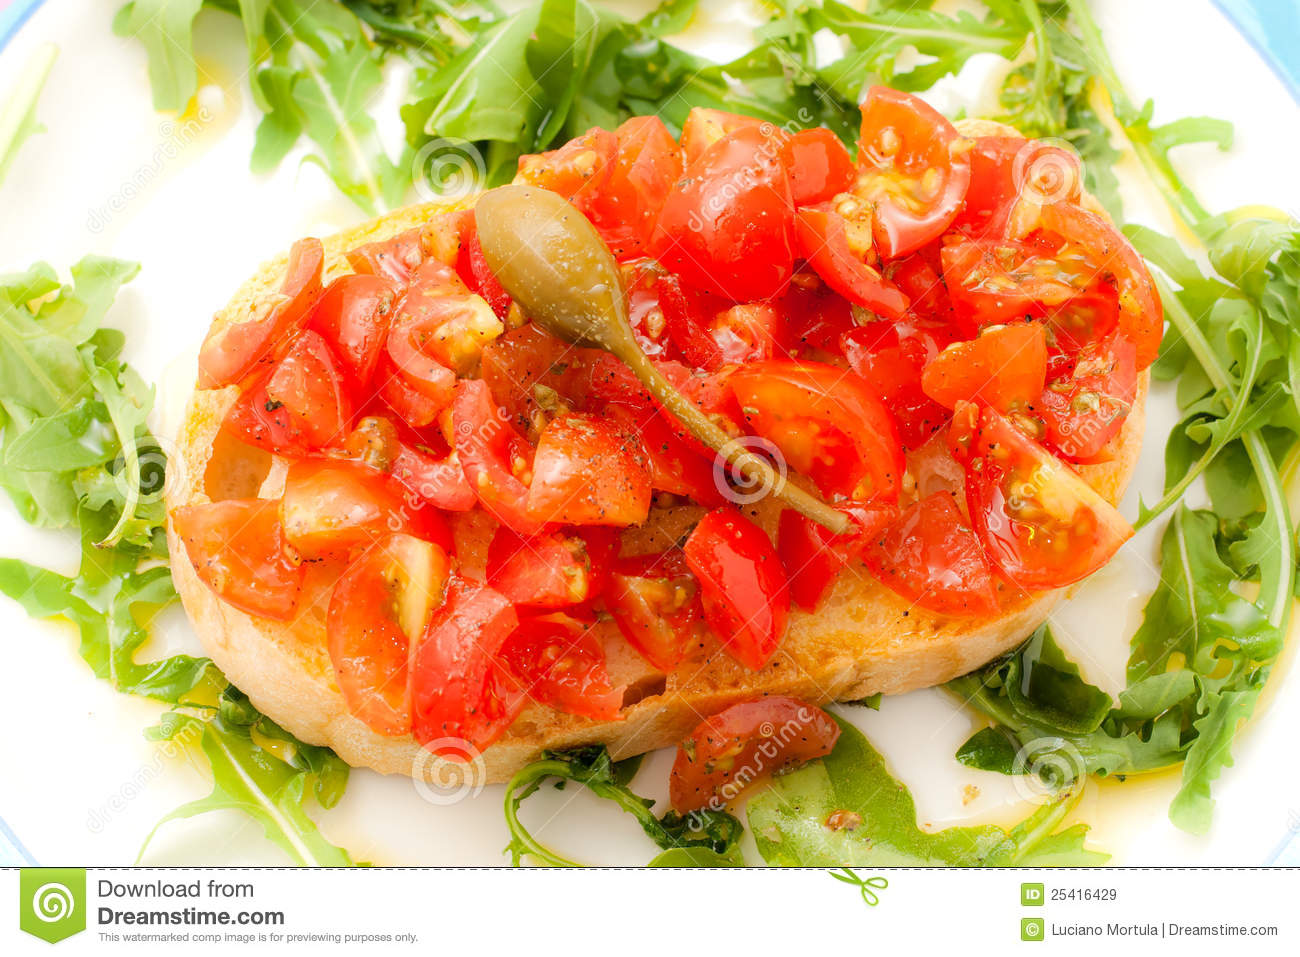 Bruschetta With Tomato, Basil And Caper. Royalty Free Stock Images ...